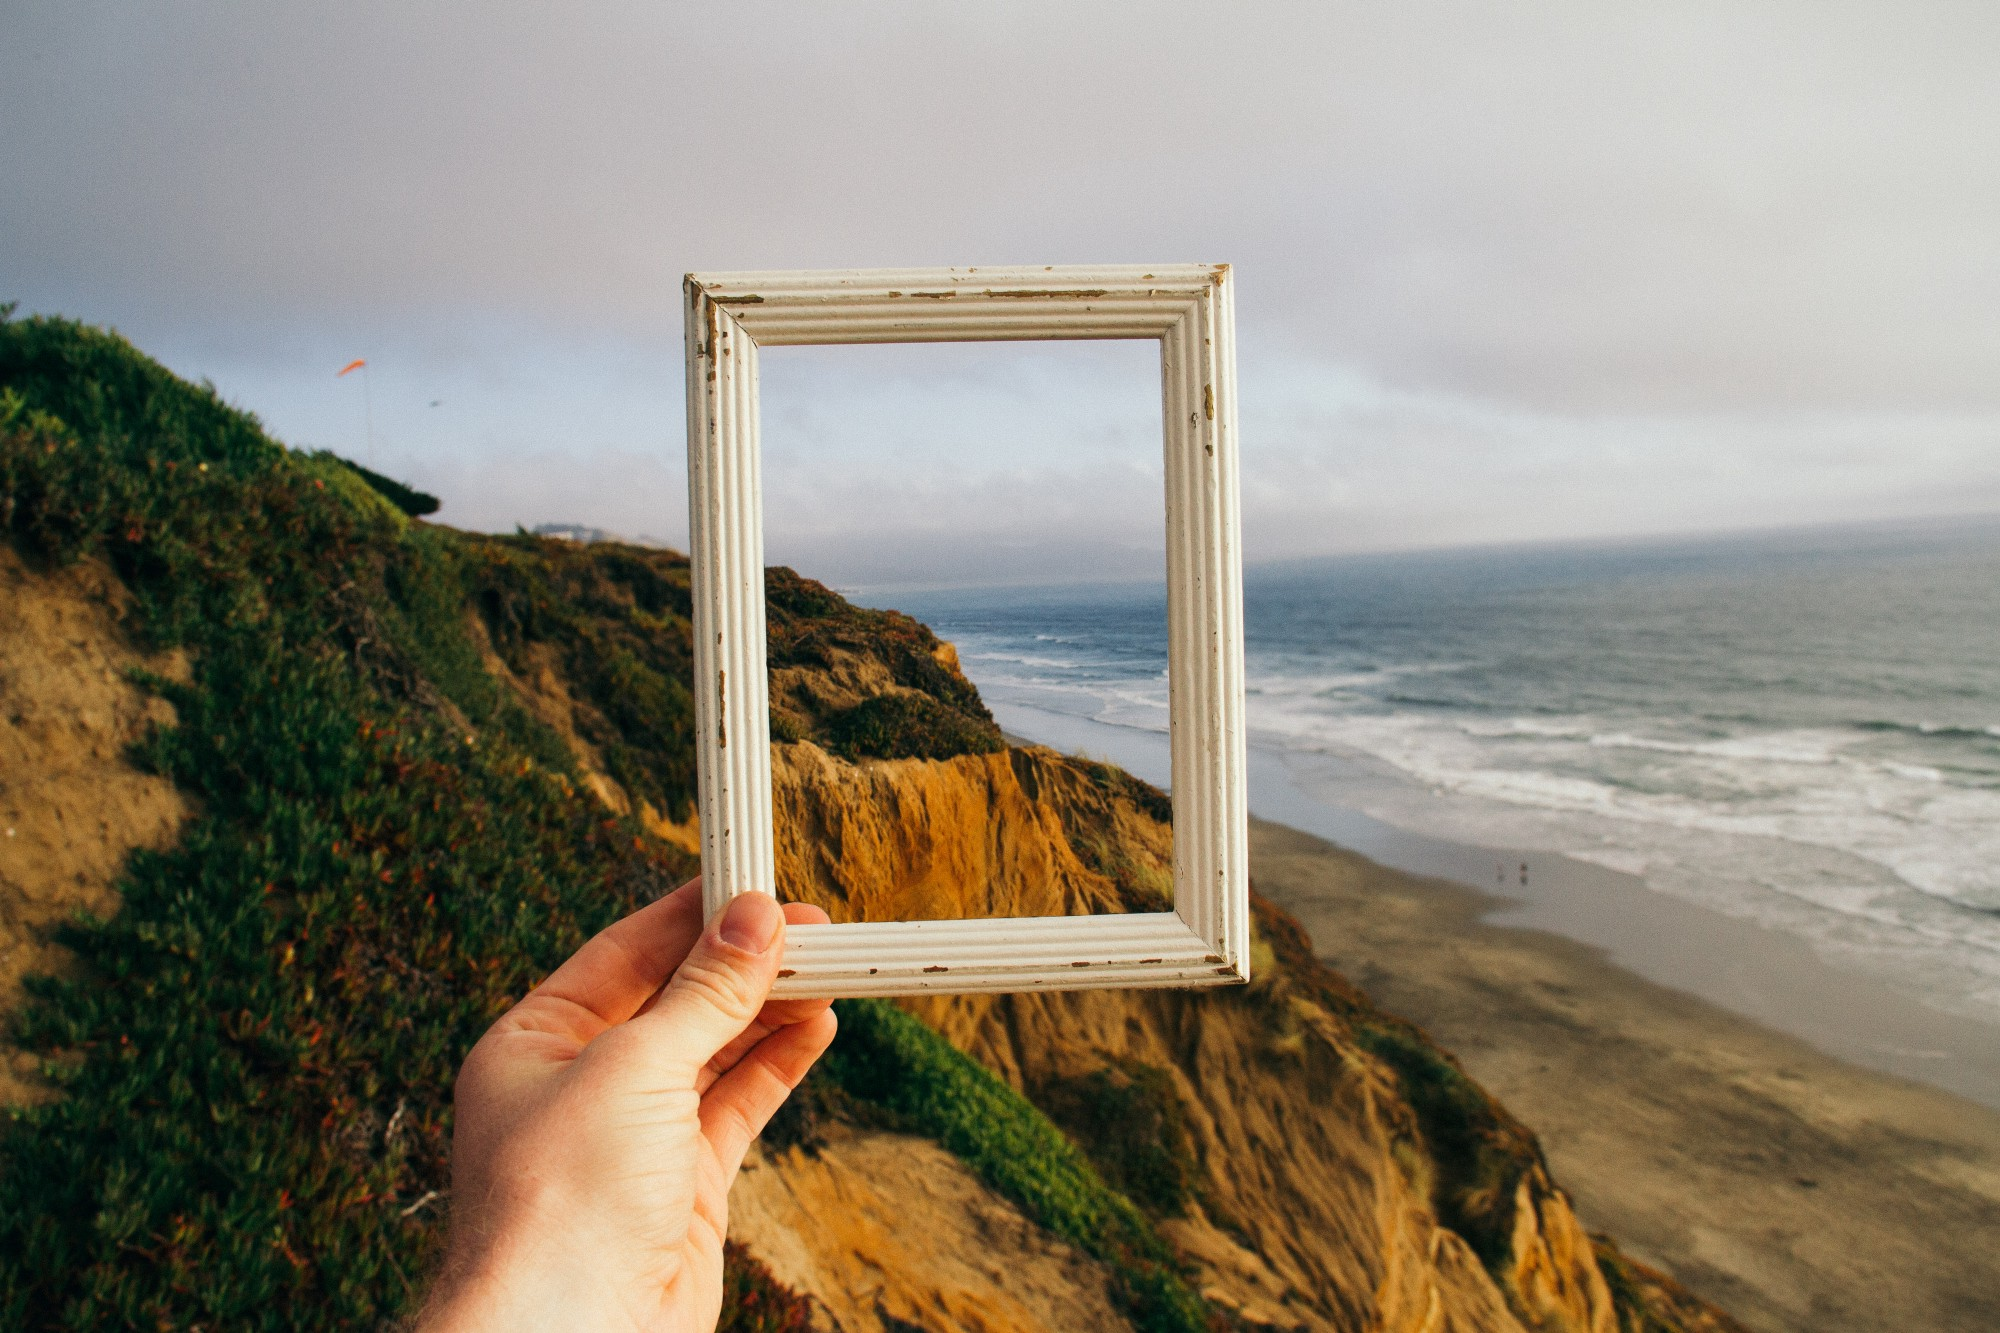 Person holding up empty frame to ocean view with cliff.